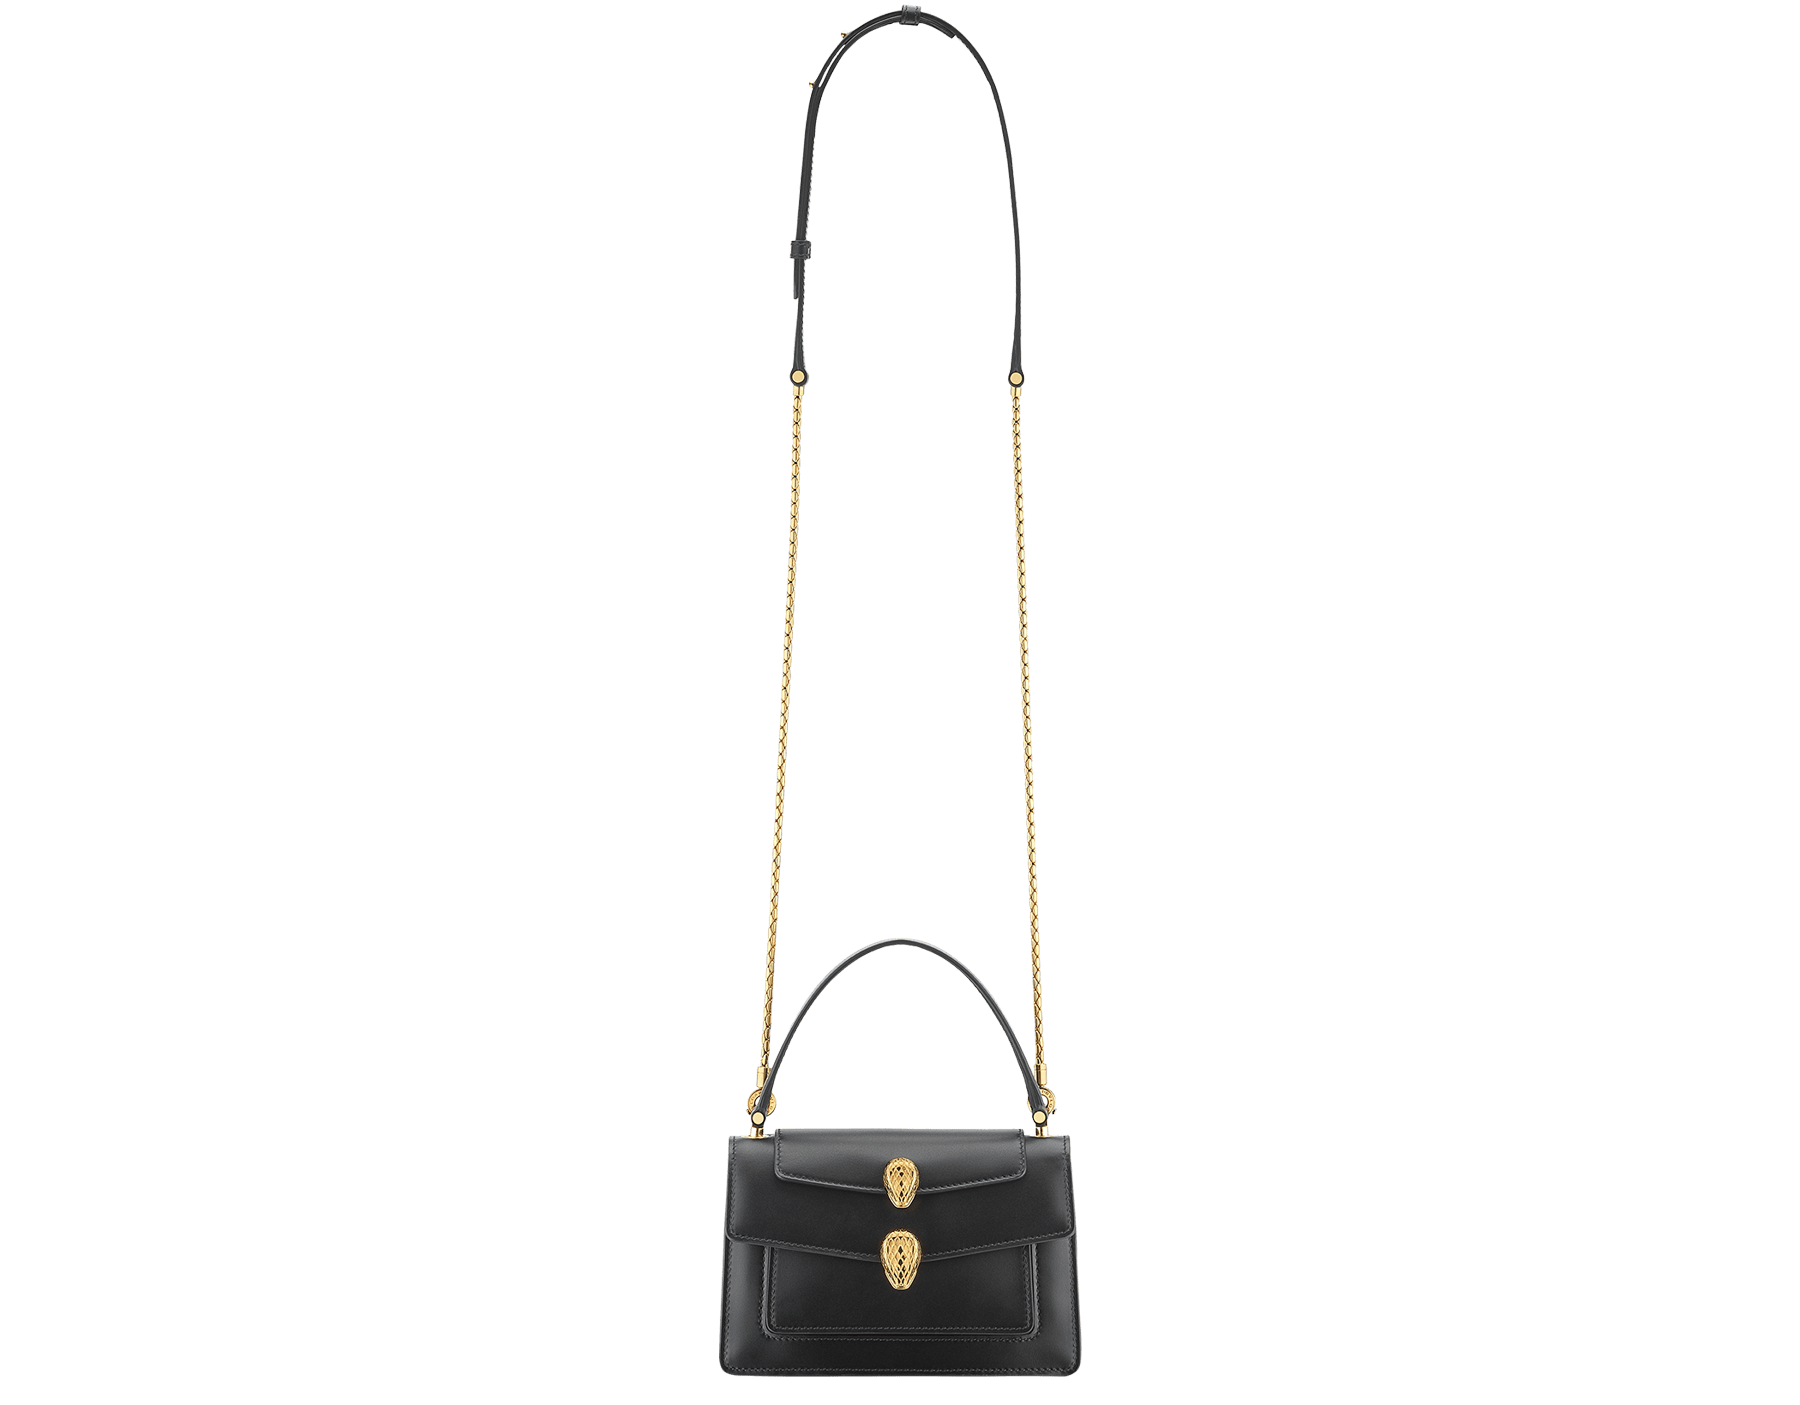 """Alexander Wang x Bvlgari"" belt bag in smooth peach calf leather. New double Serpenti head closure in antique gold-plated brass with tempting red enamel eyes. SFW-001-1029S image 6"